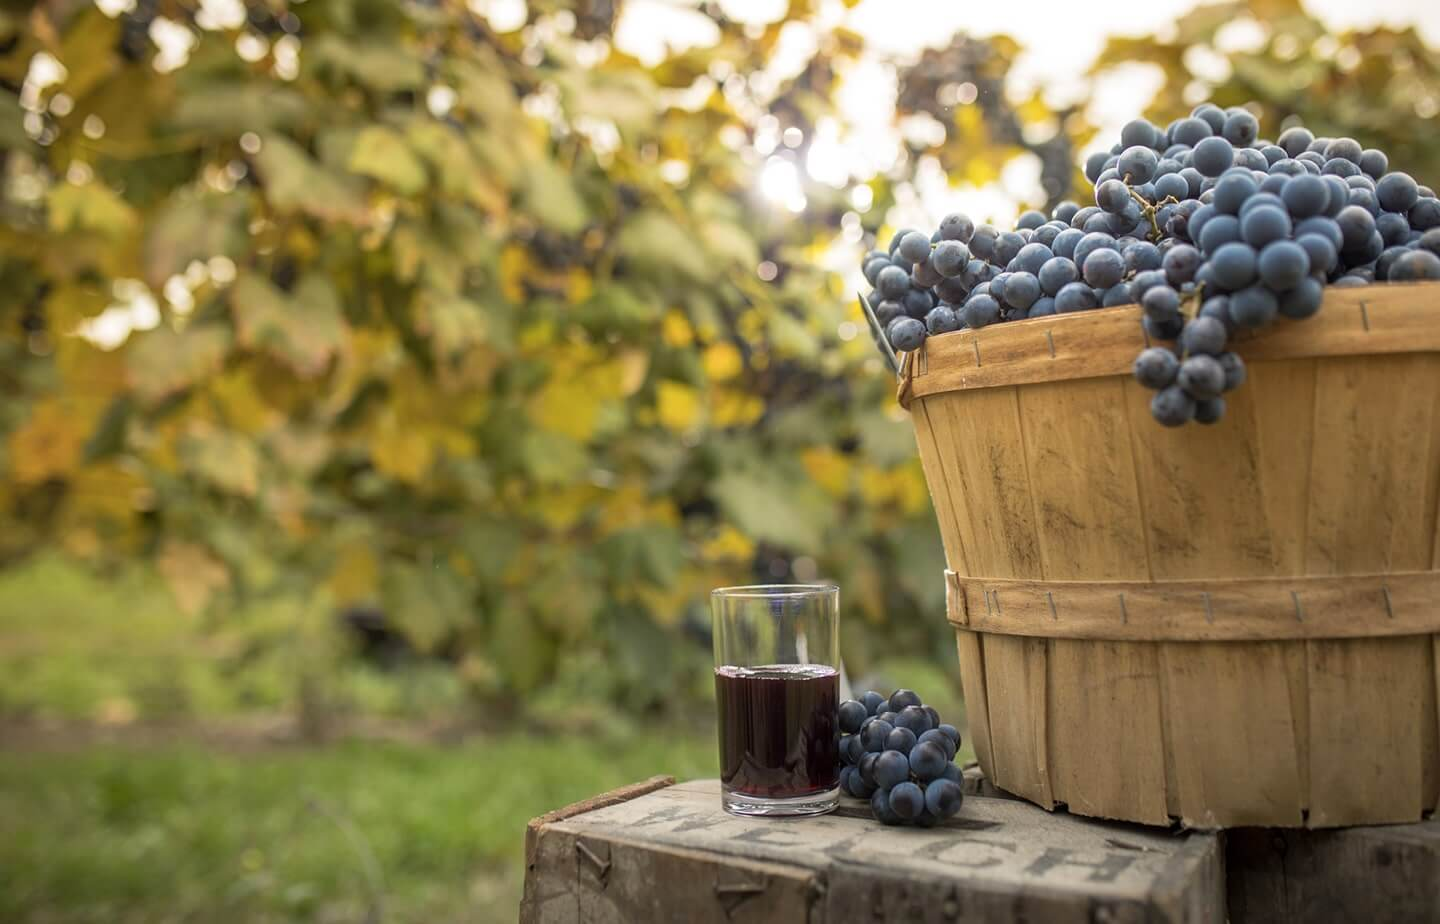 A glass of Welch's Concord grape juice and a full barrel of Concord grapes